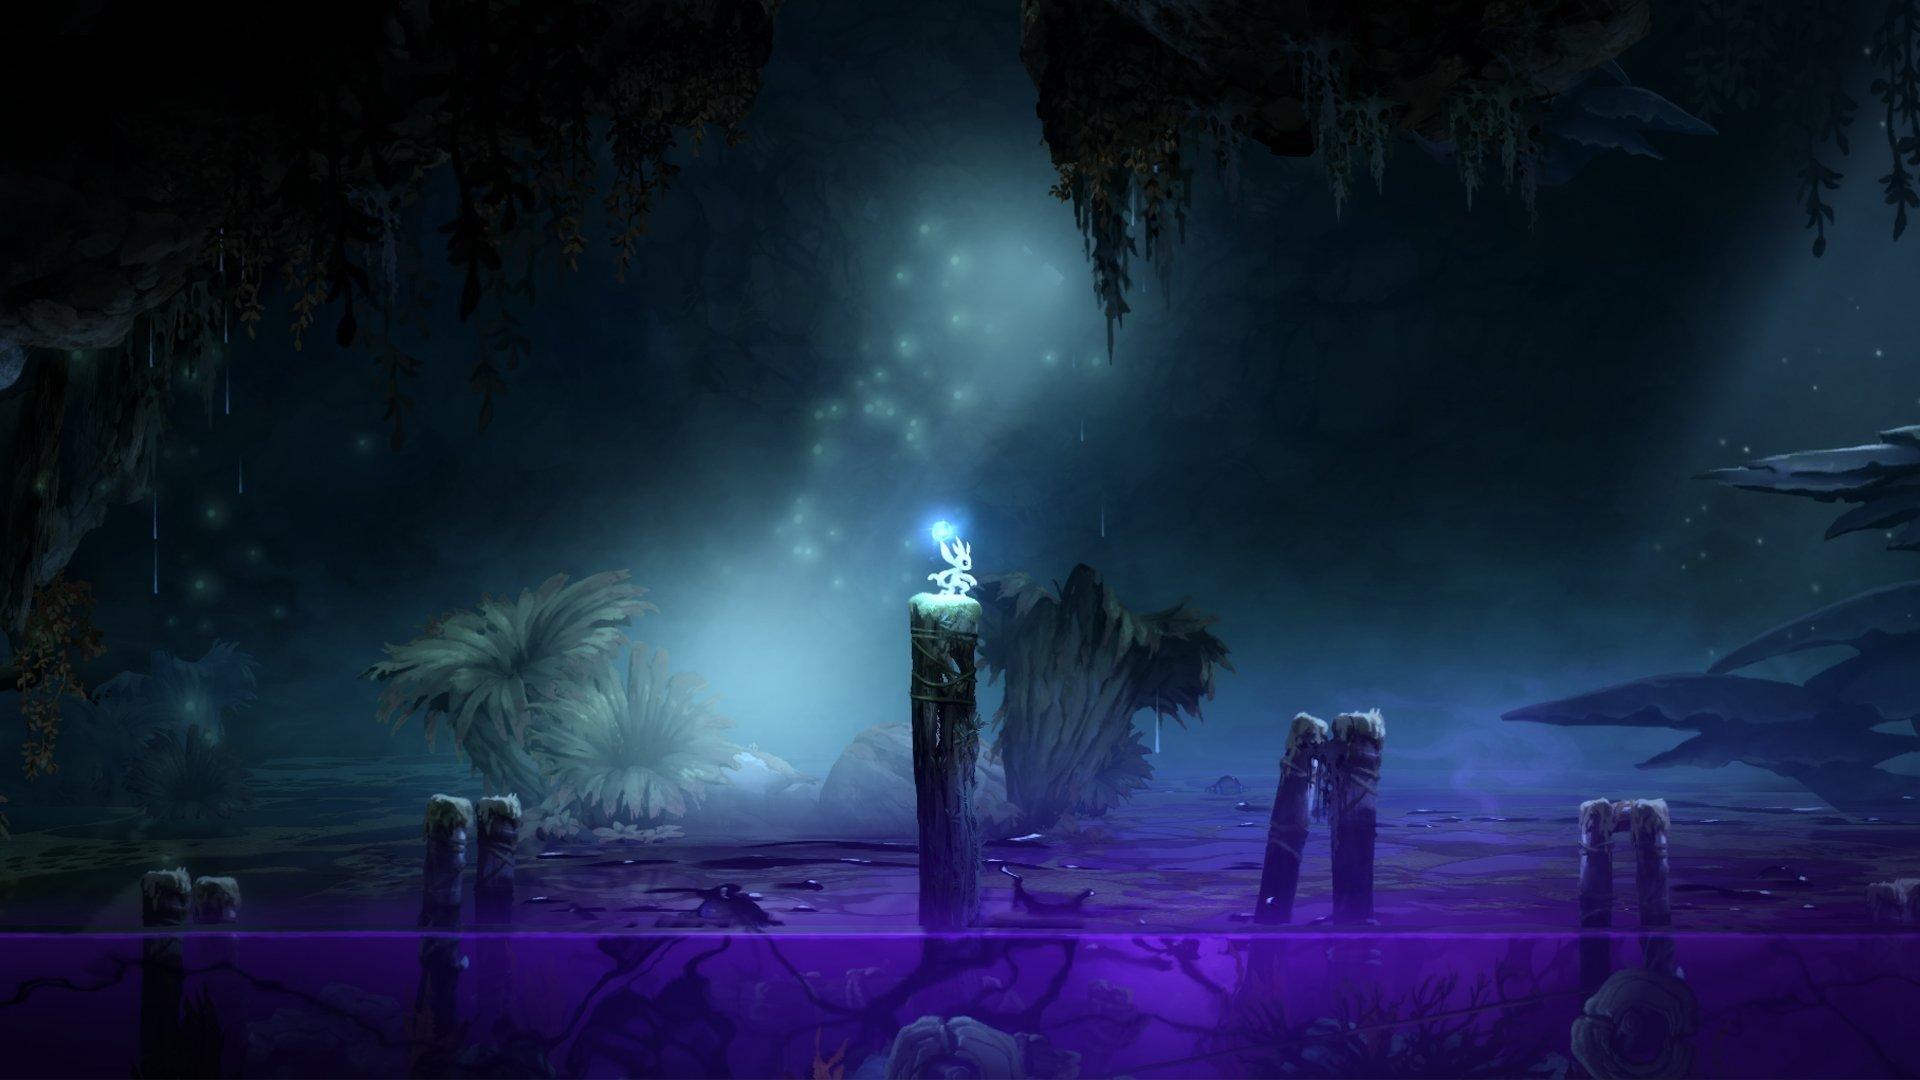 Create Animated Wallpaper Ori And The Blind Forest Full Hd Wallpaper And Background